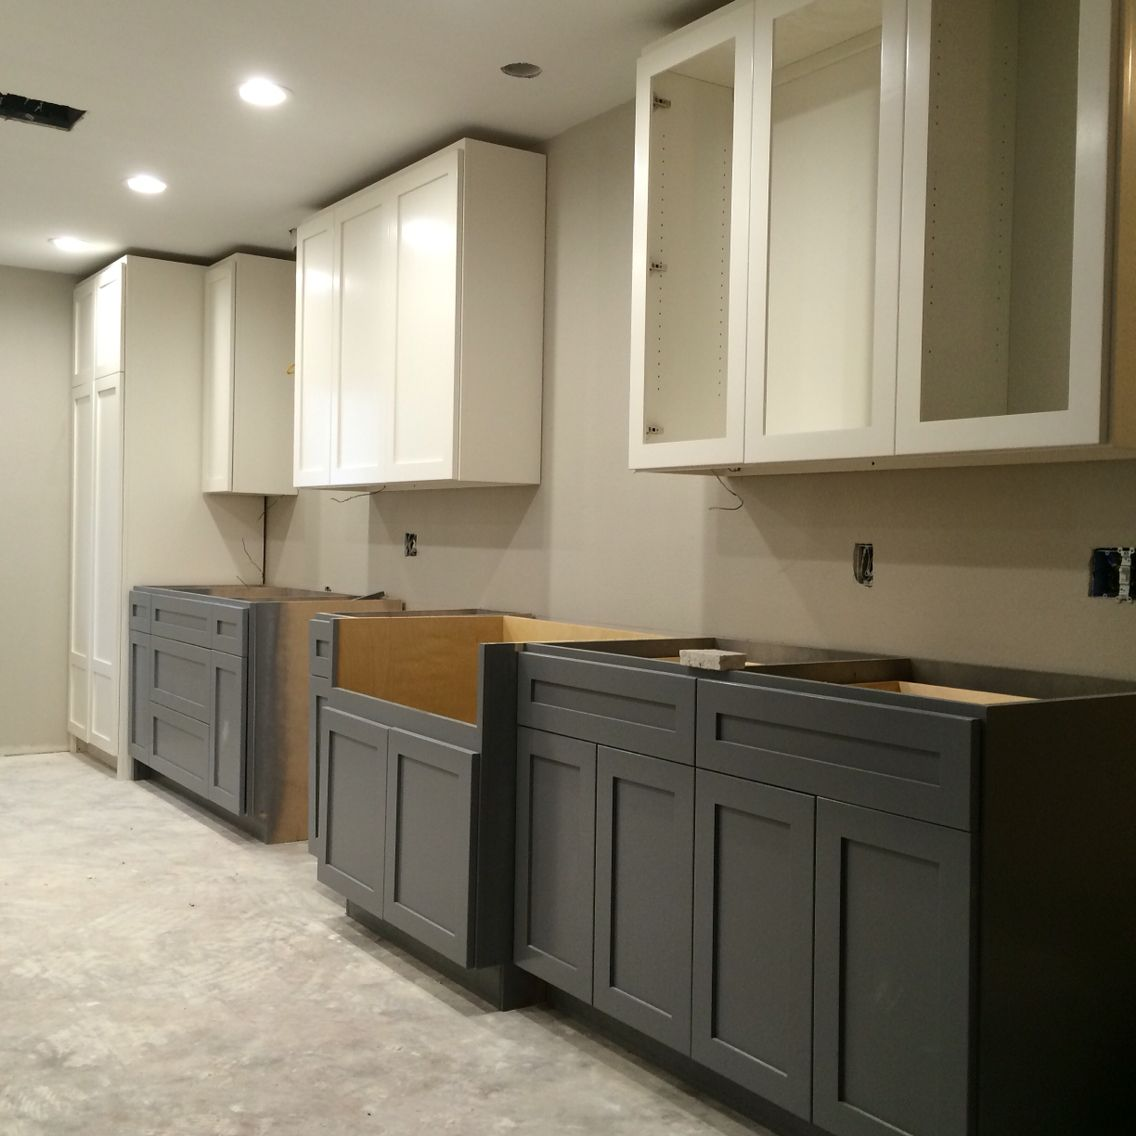 Best 27 Two Tone Kitchen Cabinets Ideas Concept This Is 400 x 300